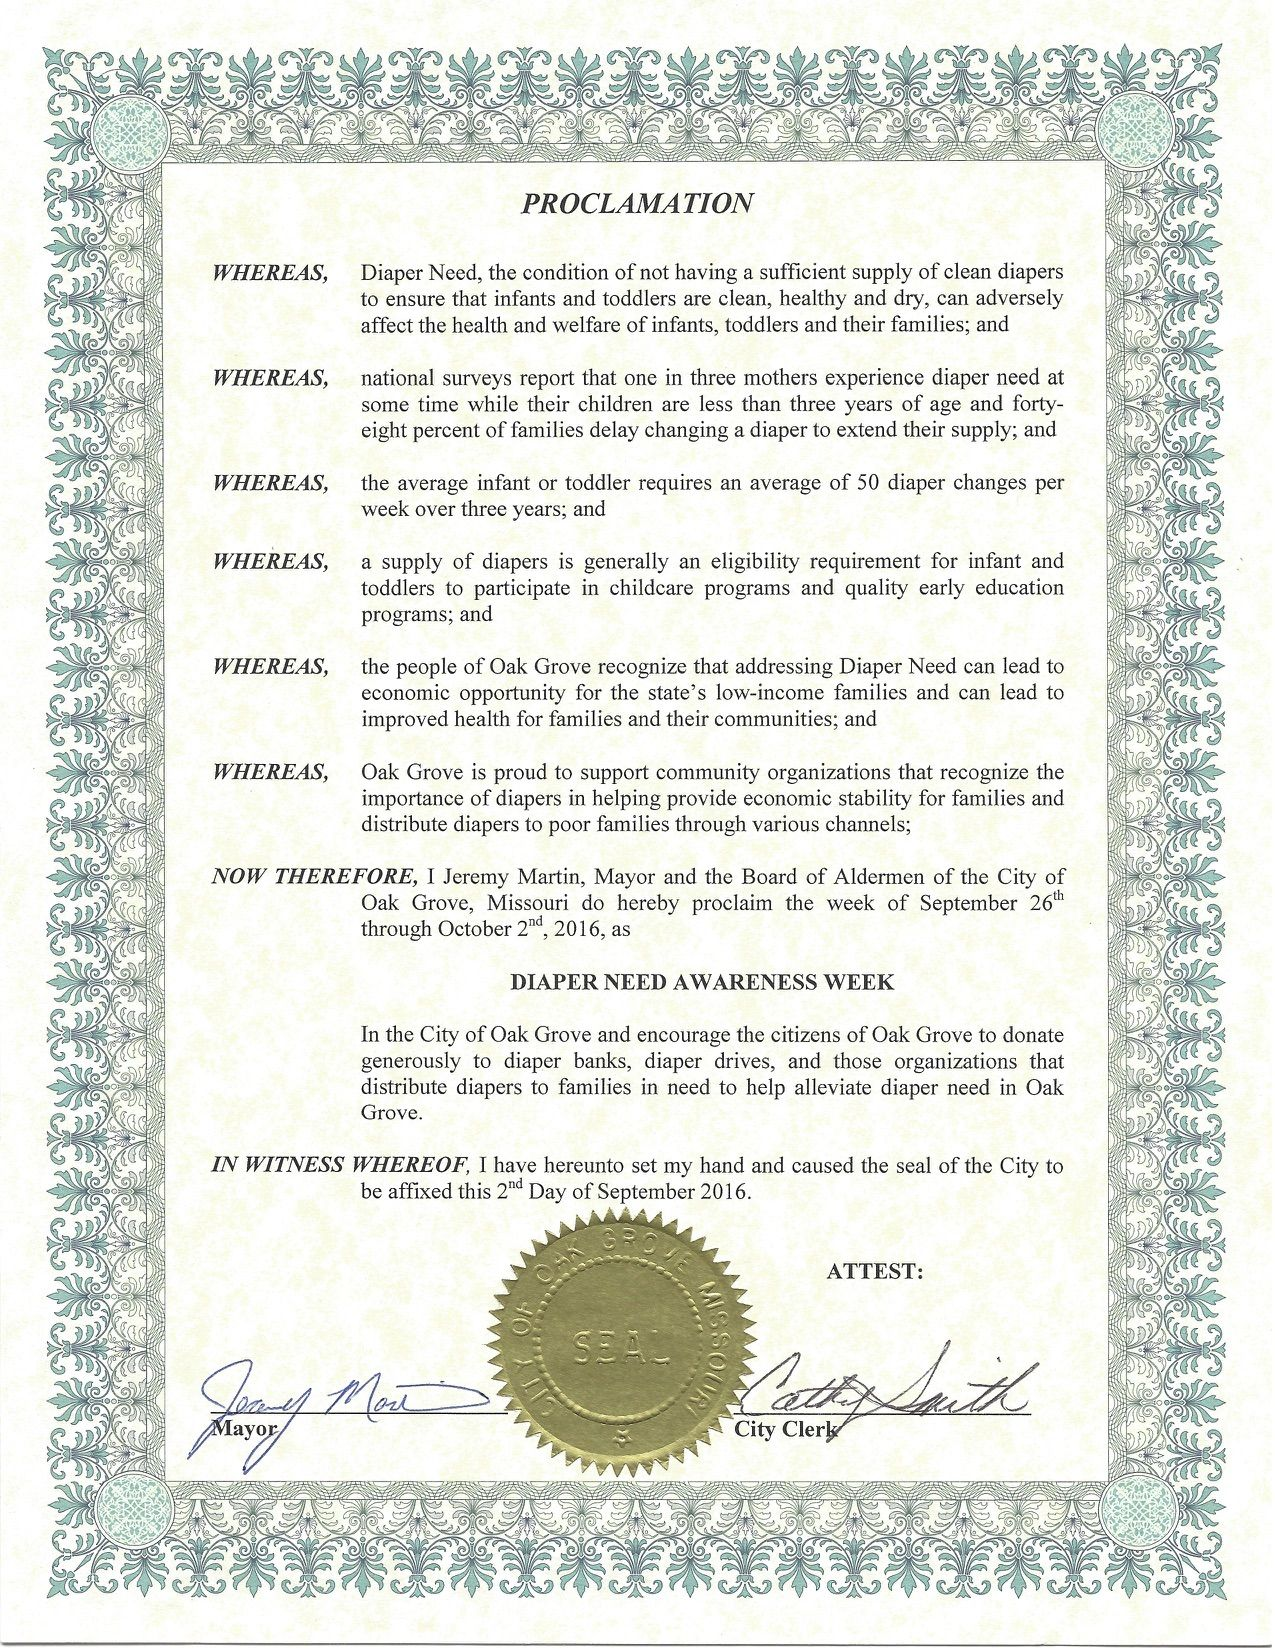 OAK GROVE - Mayoral proclamation recognizing Diaper Need Awareness Week (Sep. 26-Oct. 2, 2016) #DiaperNeed Diaperneed.org